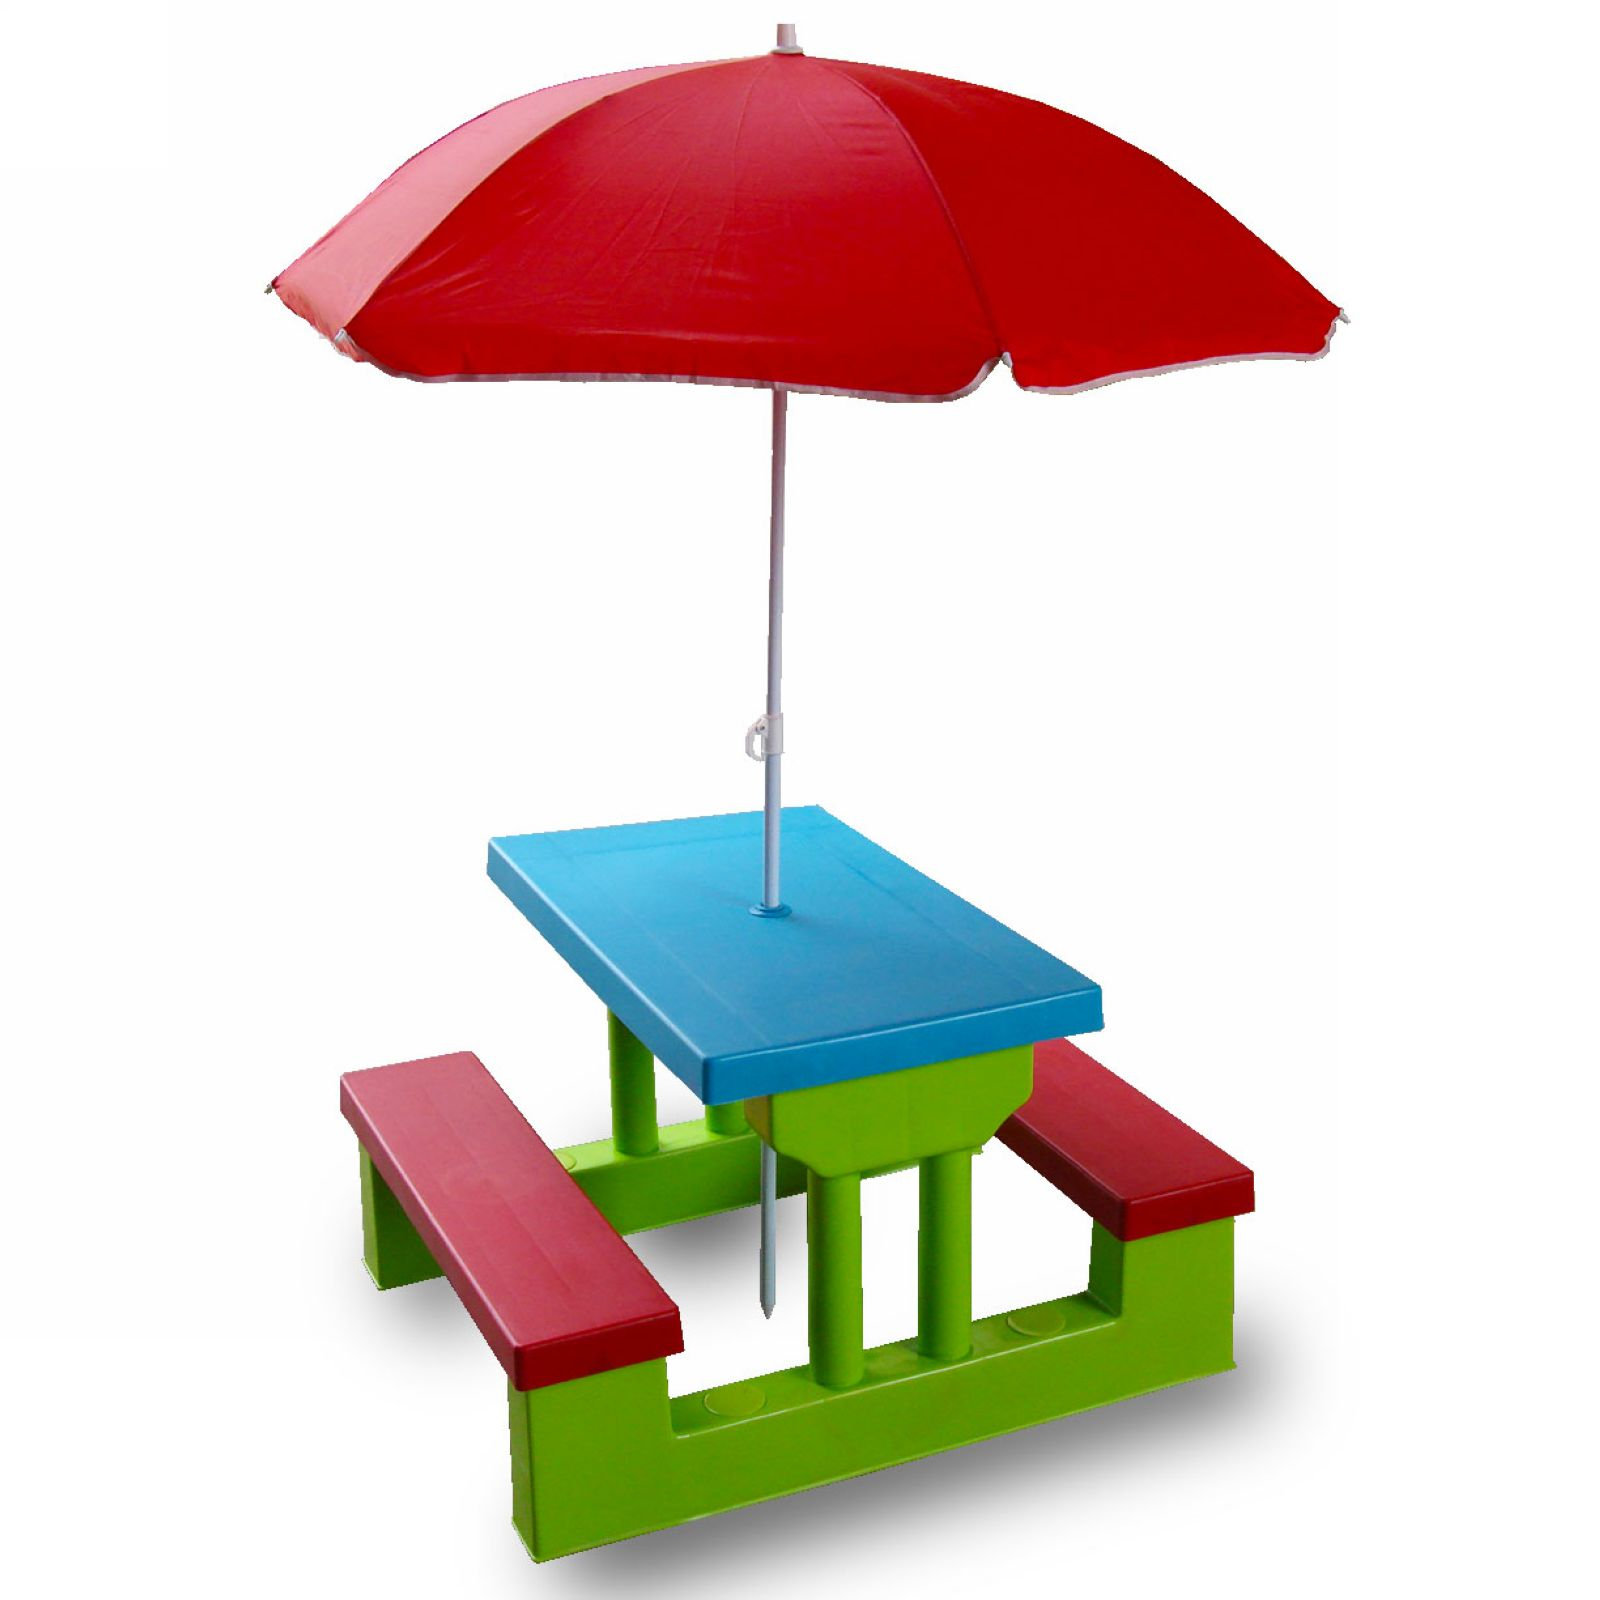 new kids child picnic garden red parasol blue table green bench set 4